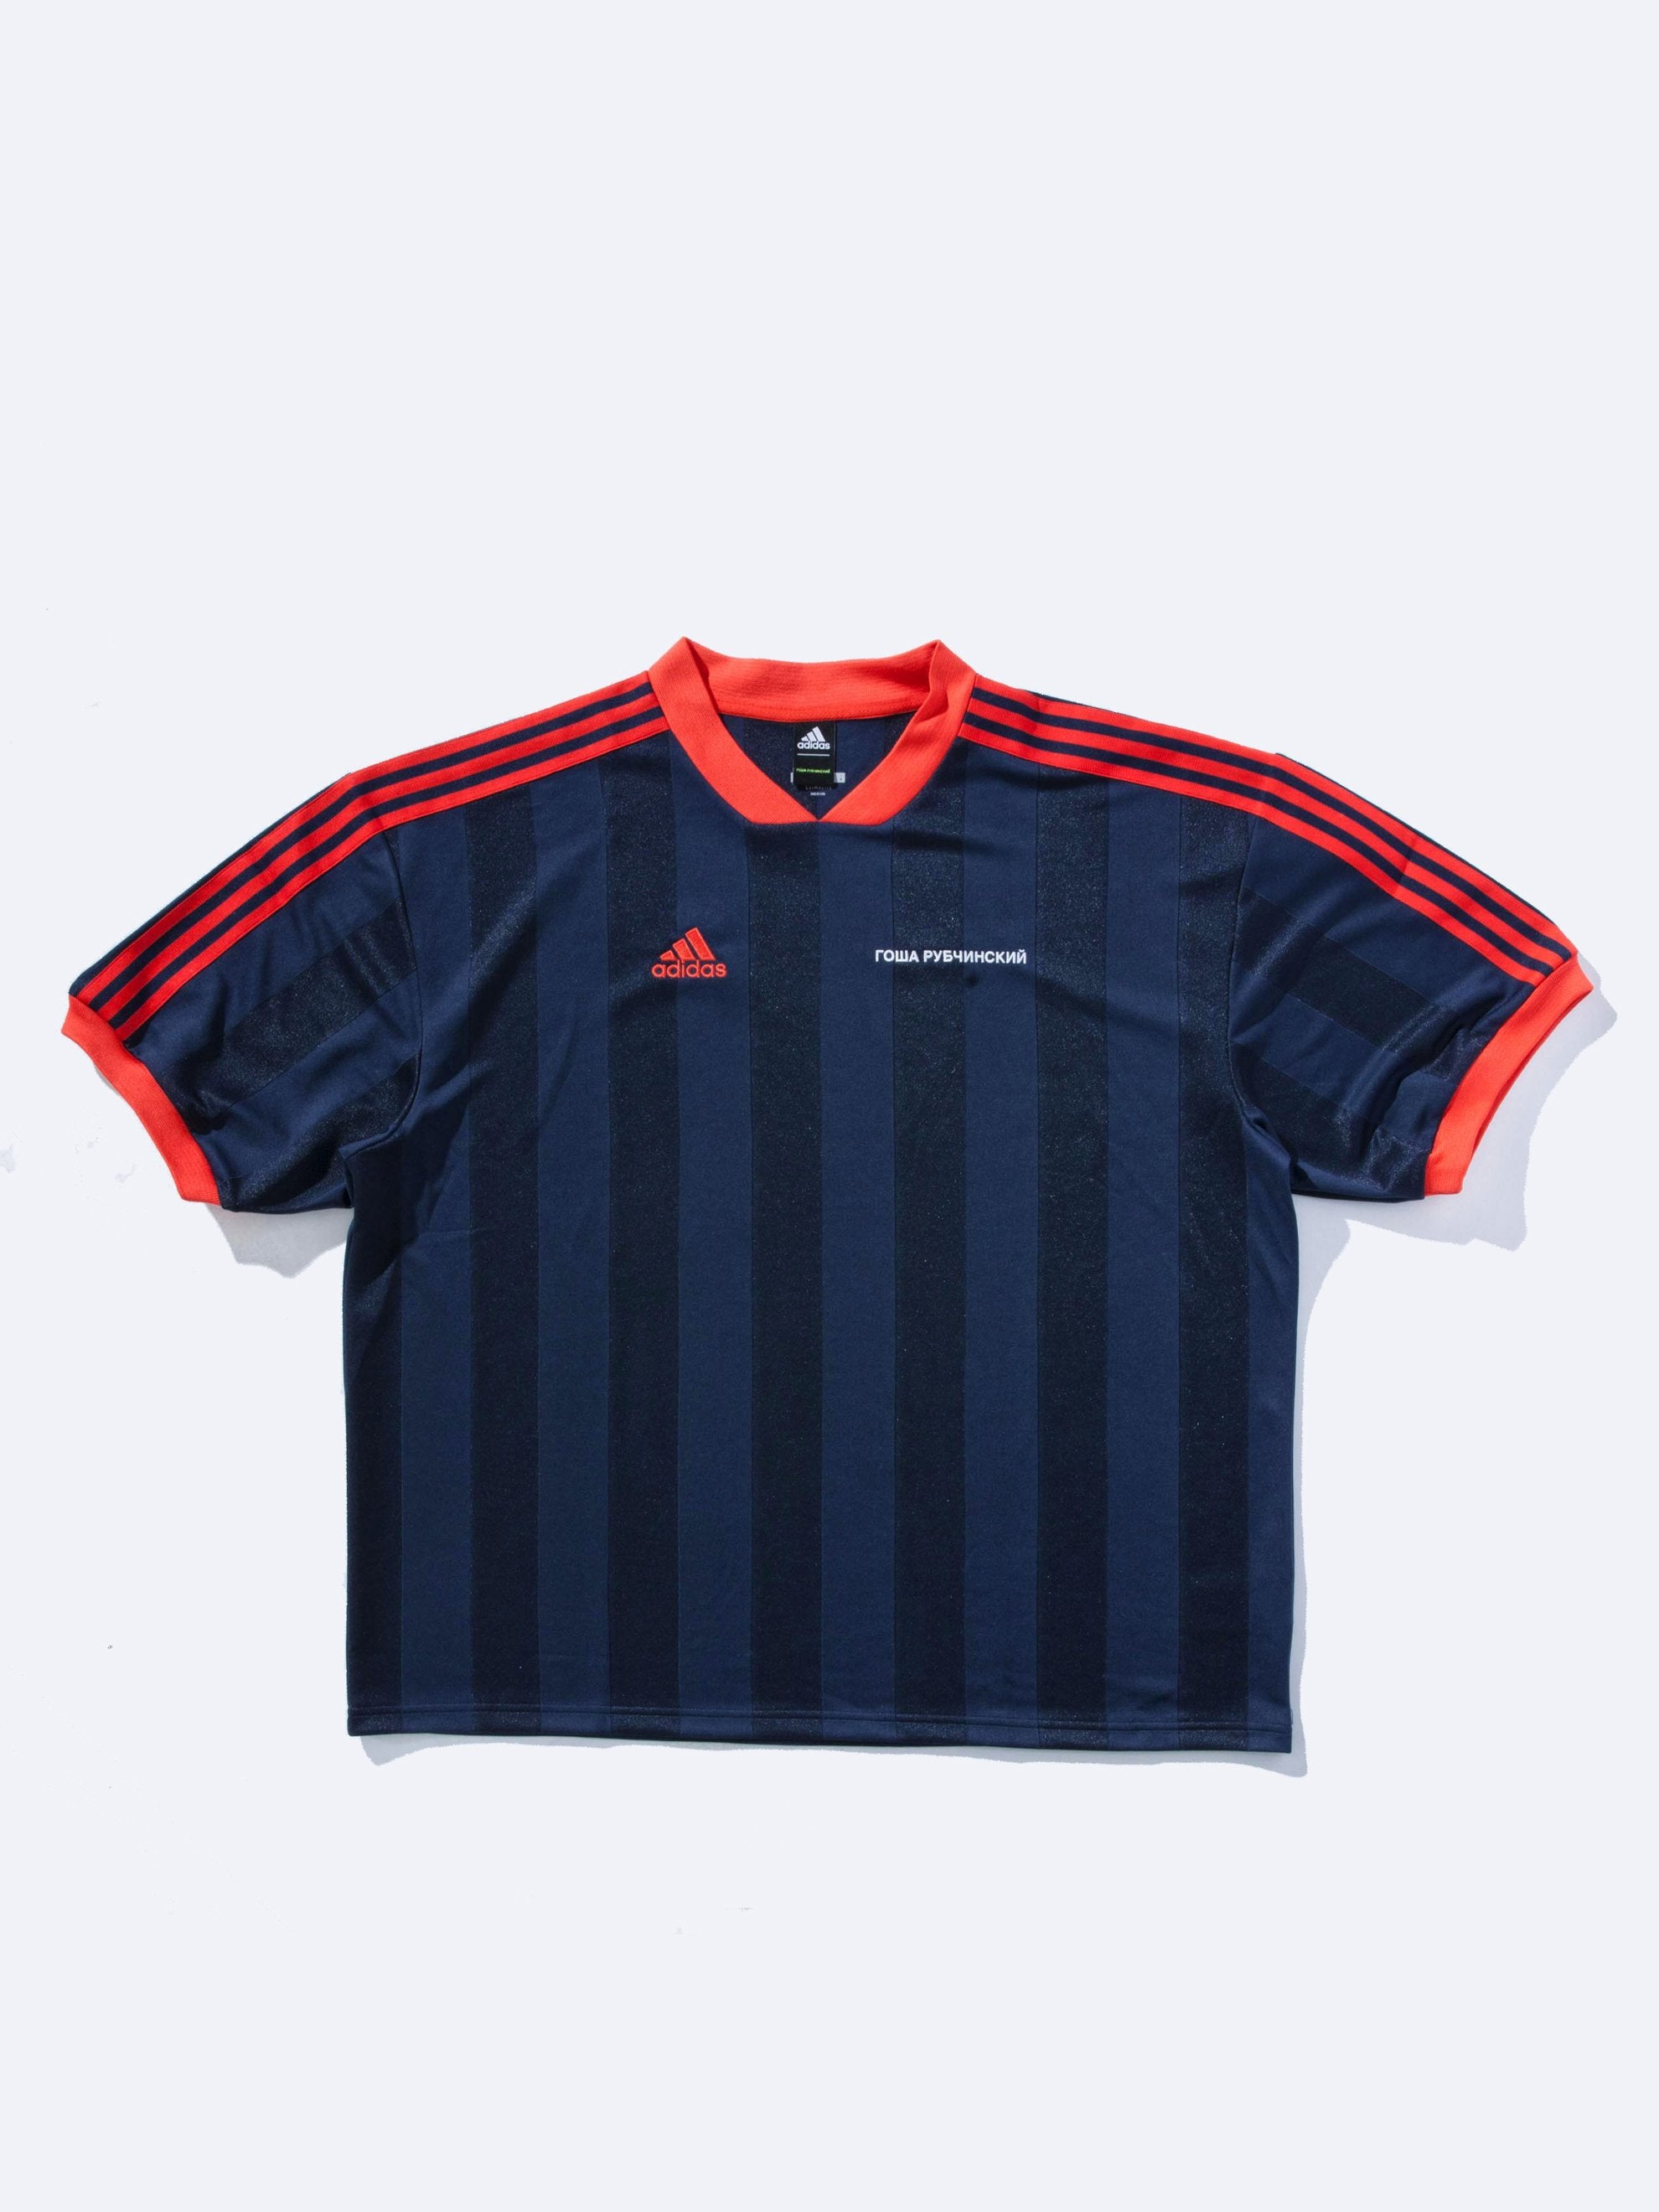 Navy/Red Stripes Adidas Soccer Jersey 1